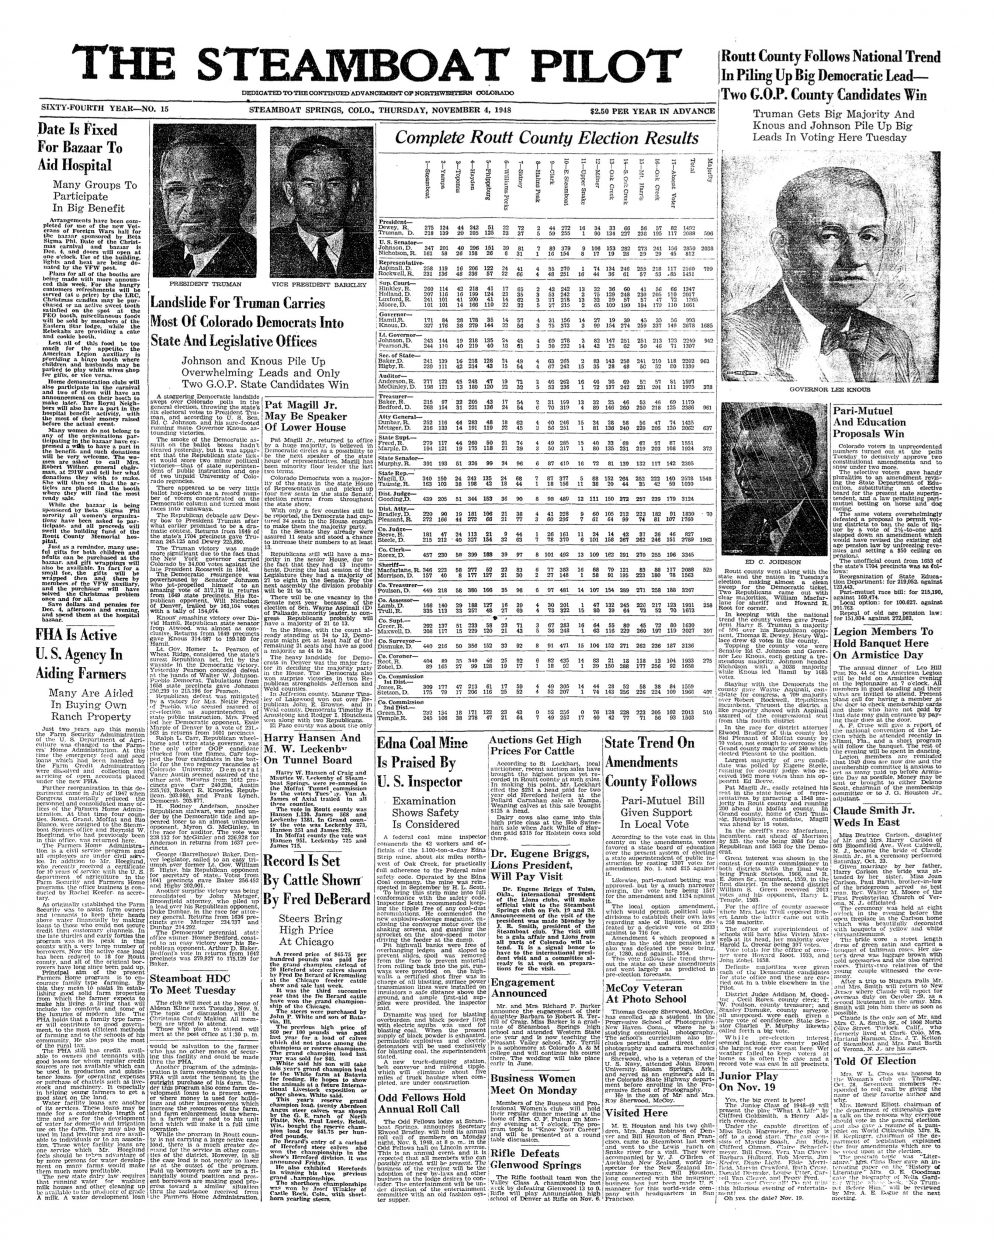 Front page of 1948 Steamboat Pilot